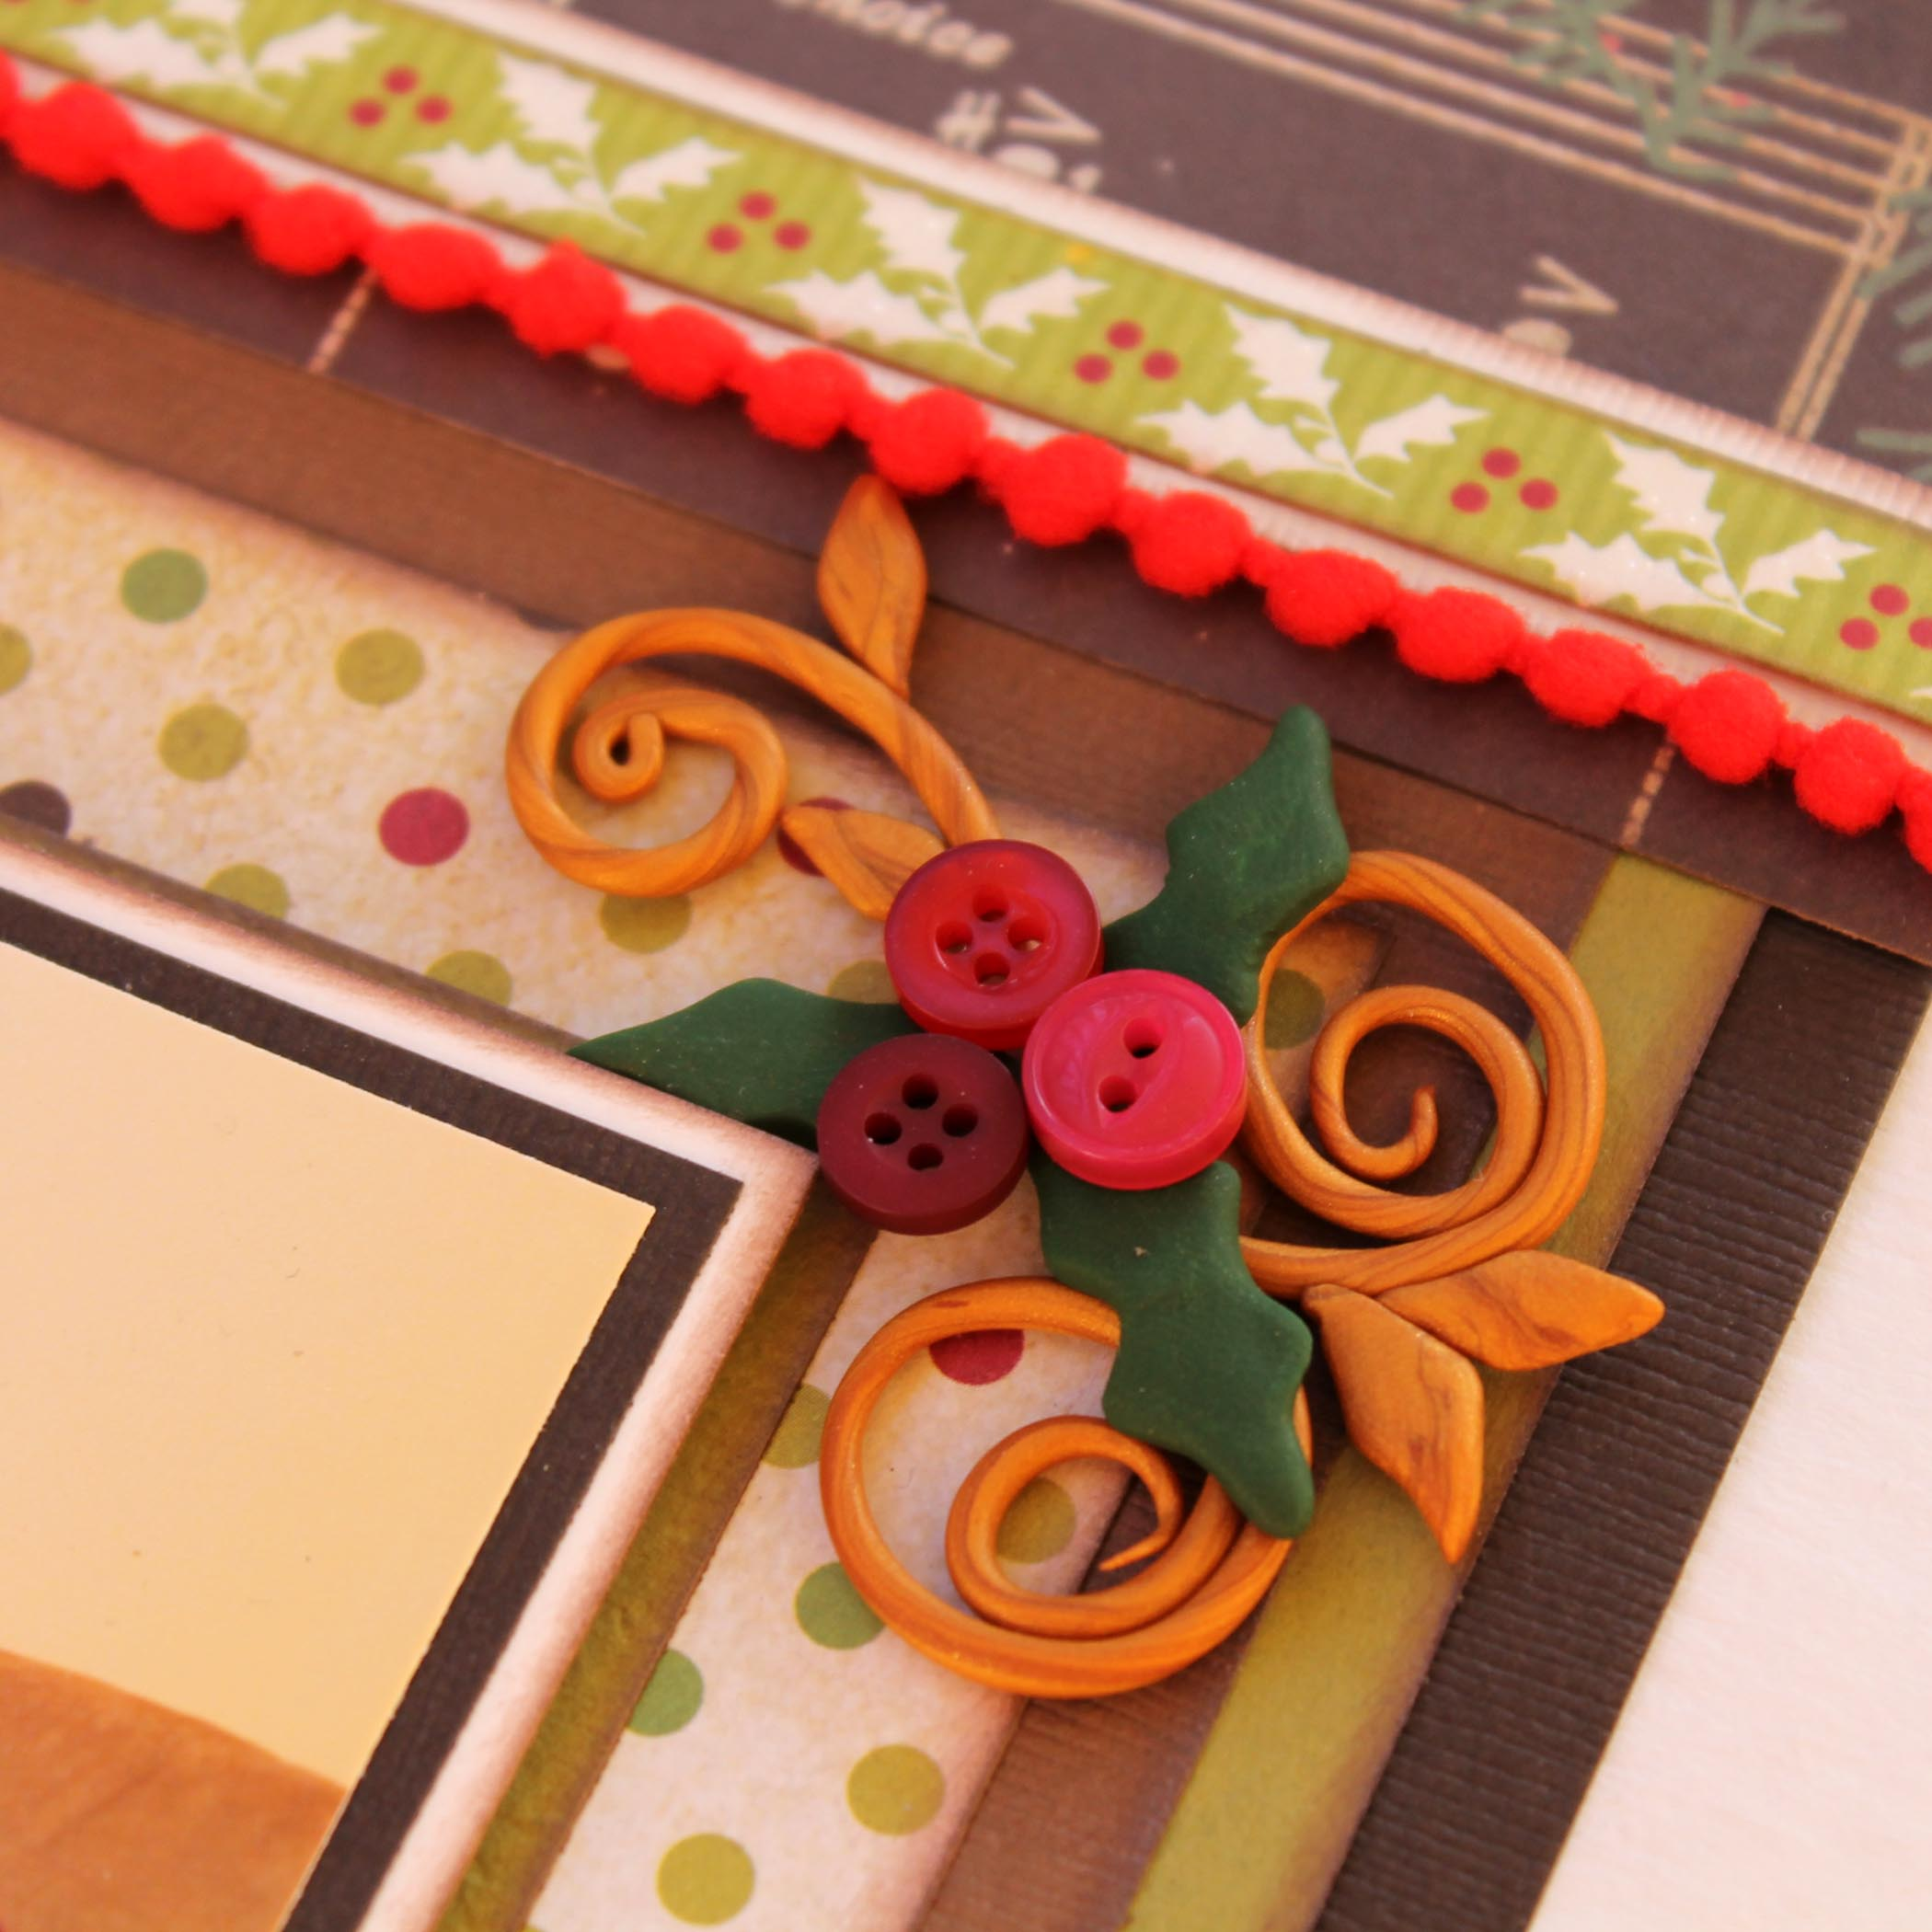 Scrapbook embellishment ideas